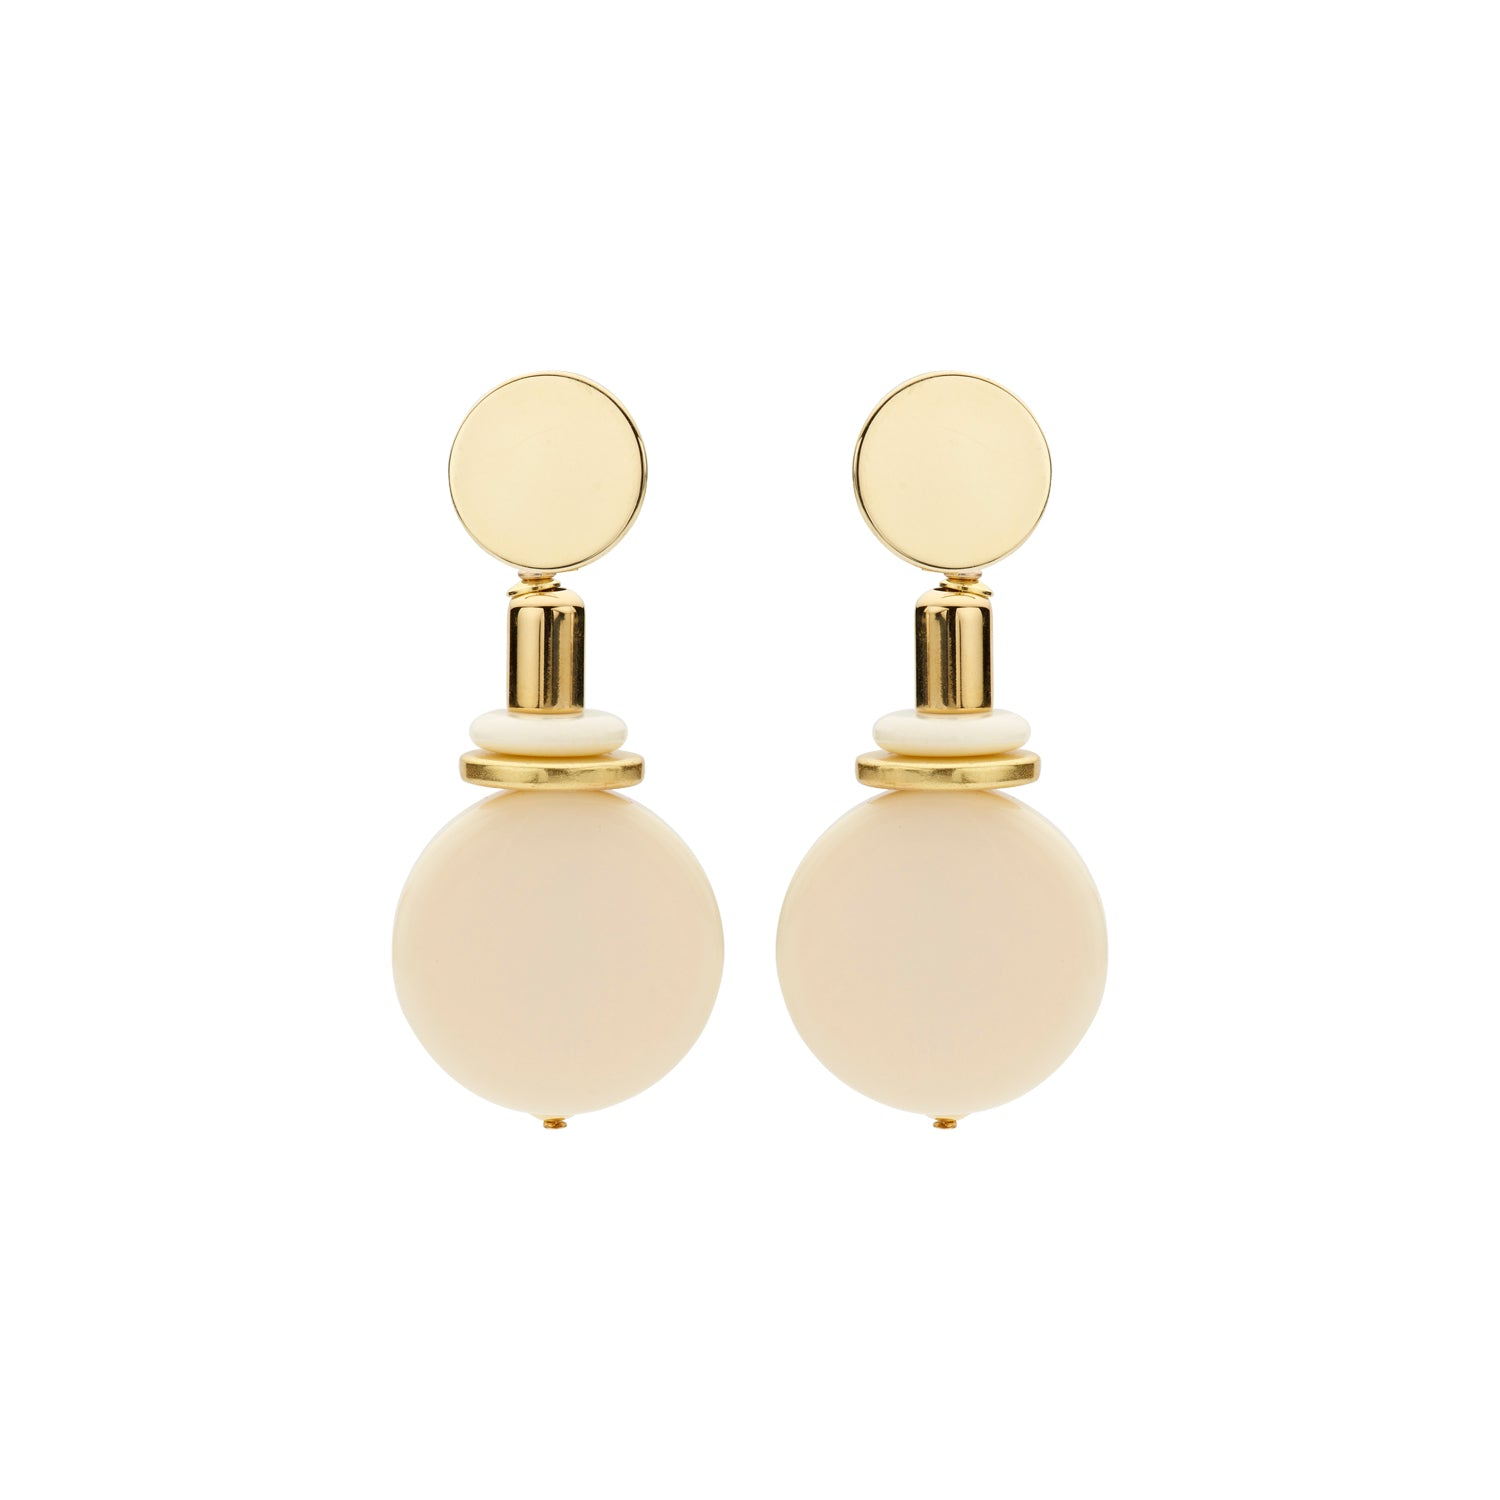 Naomi disk flat ivory earrings - Souvenirs de Pomme